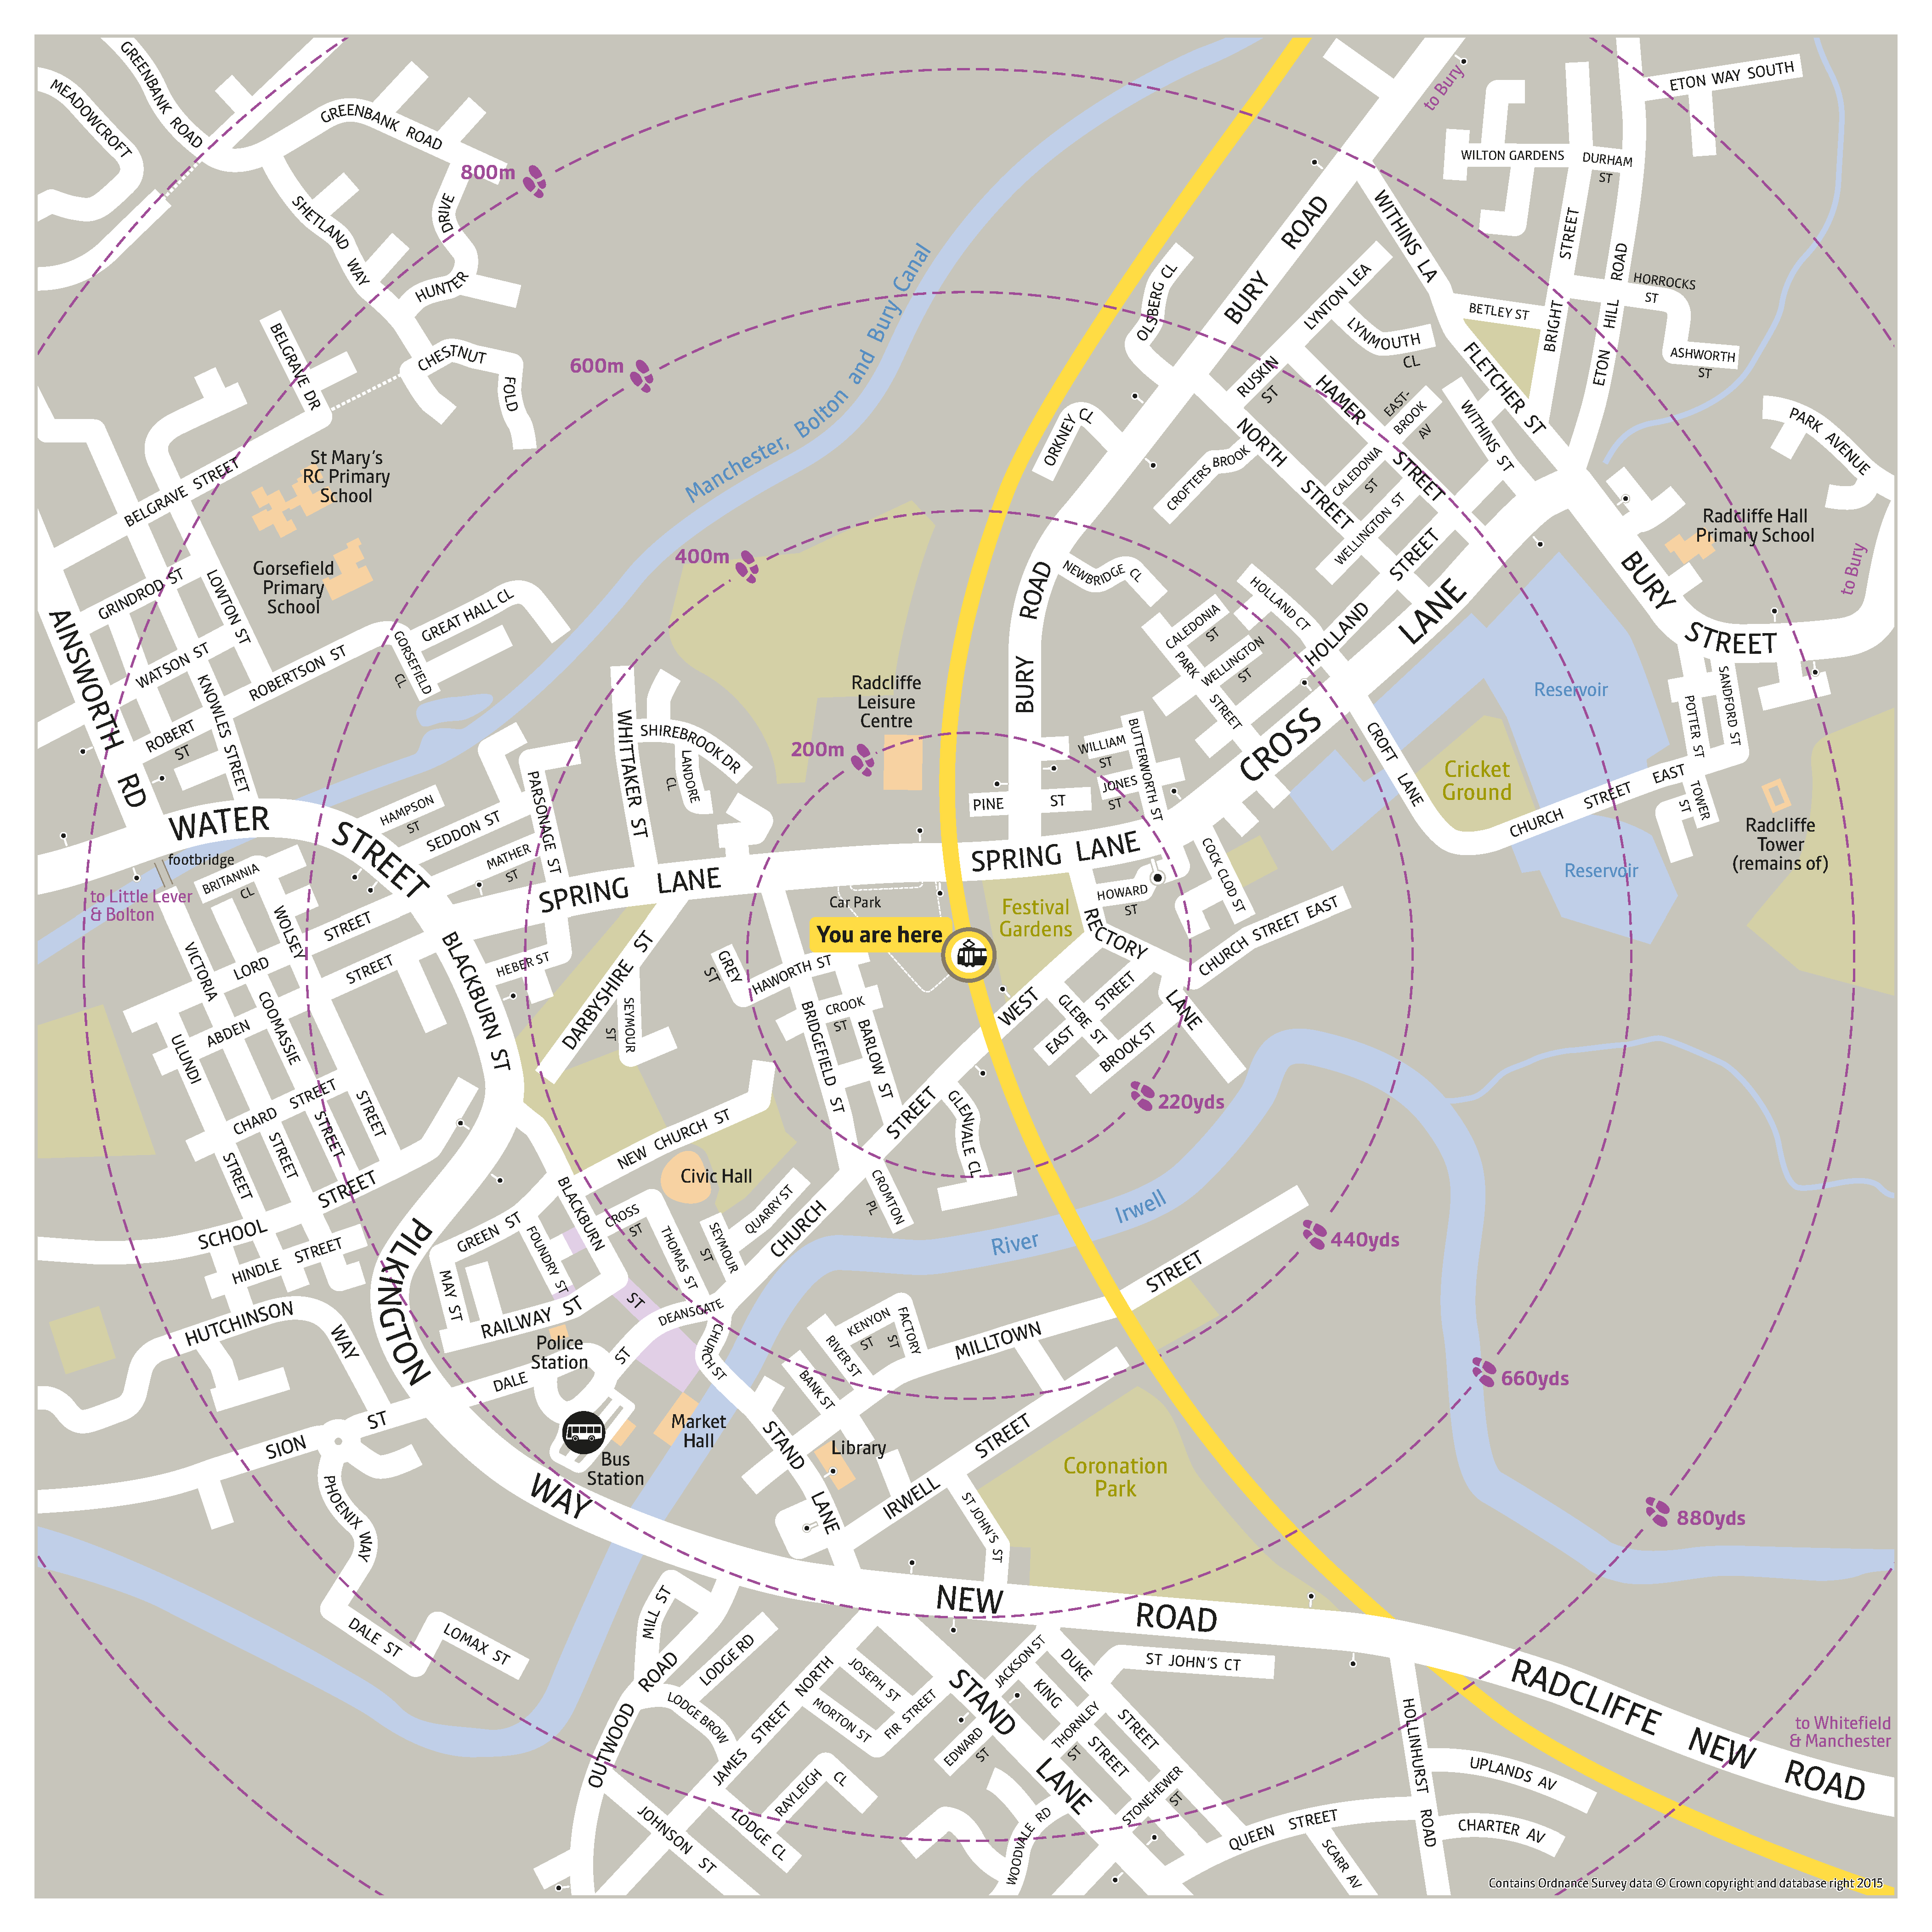 Local area map for Radcliffe tram stop